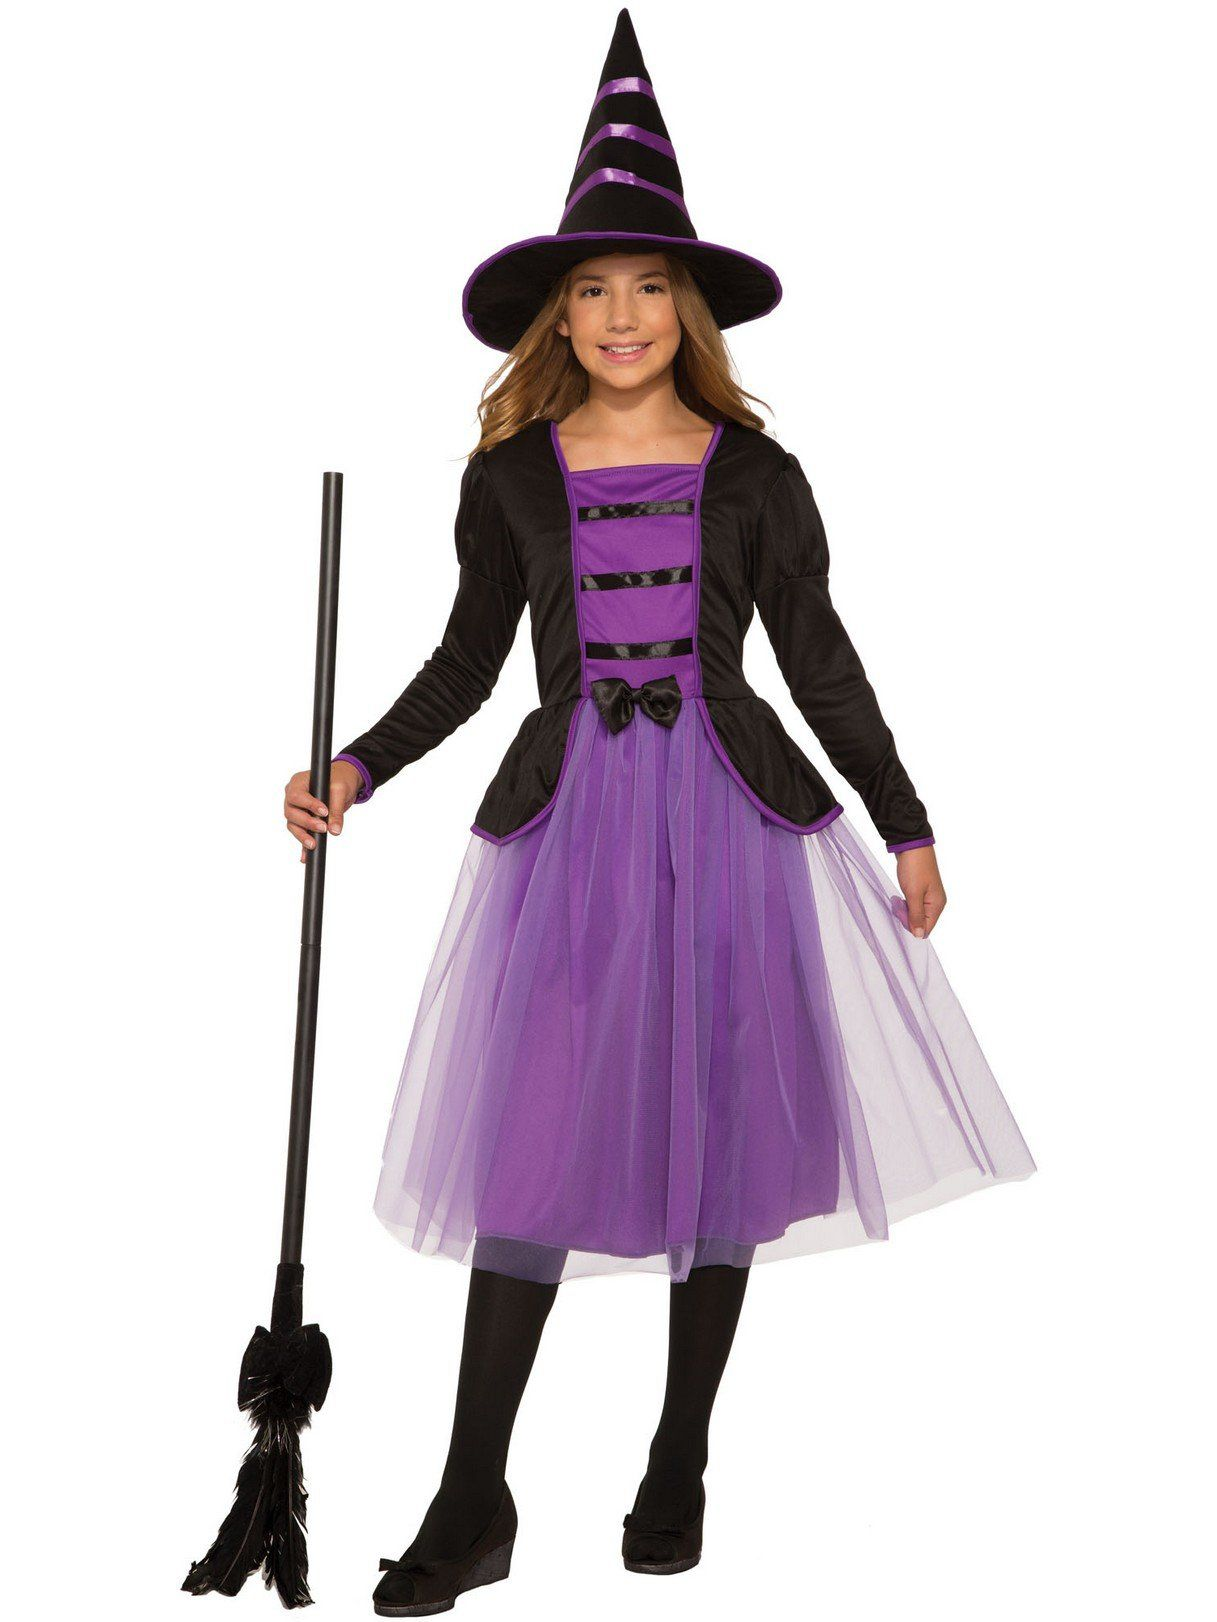 Stella The Witch Girls Costume  sc 1 st  Wholesale Halloween Costumes & Stella The Witch Girls Costume - Girls Costumes for 2018 | Wholesale ...